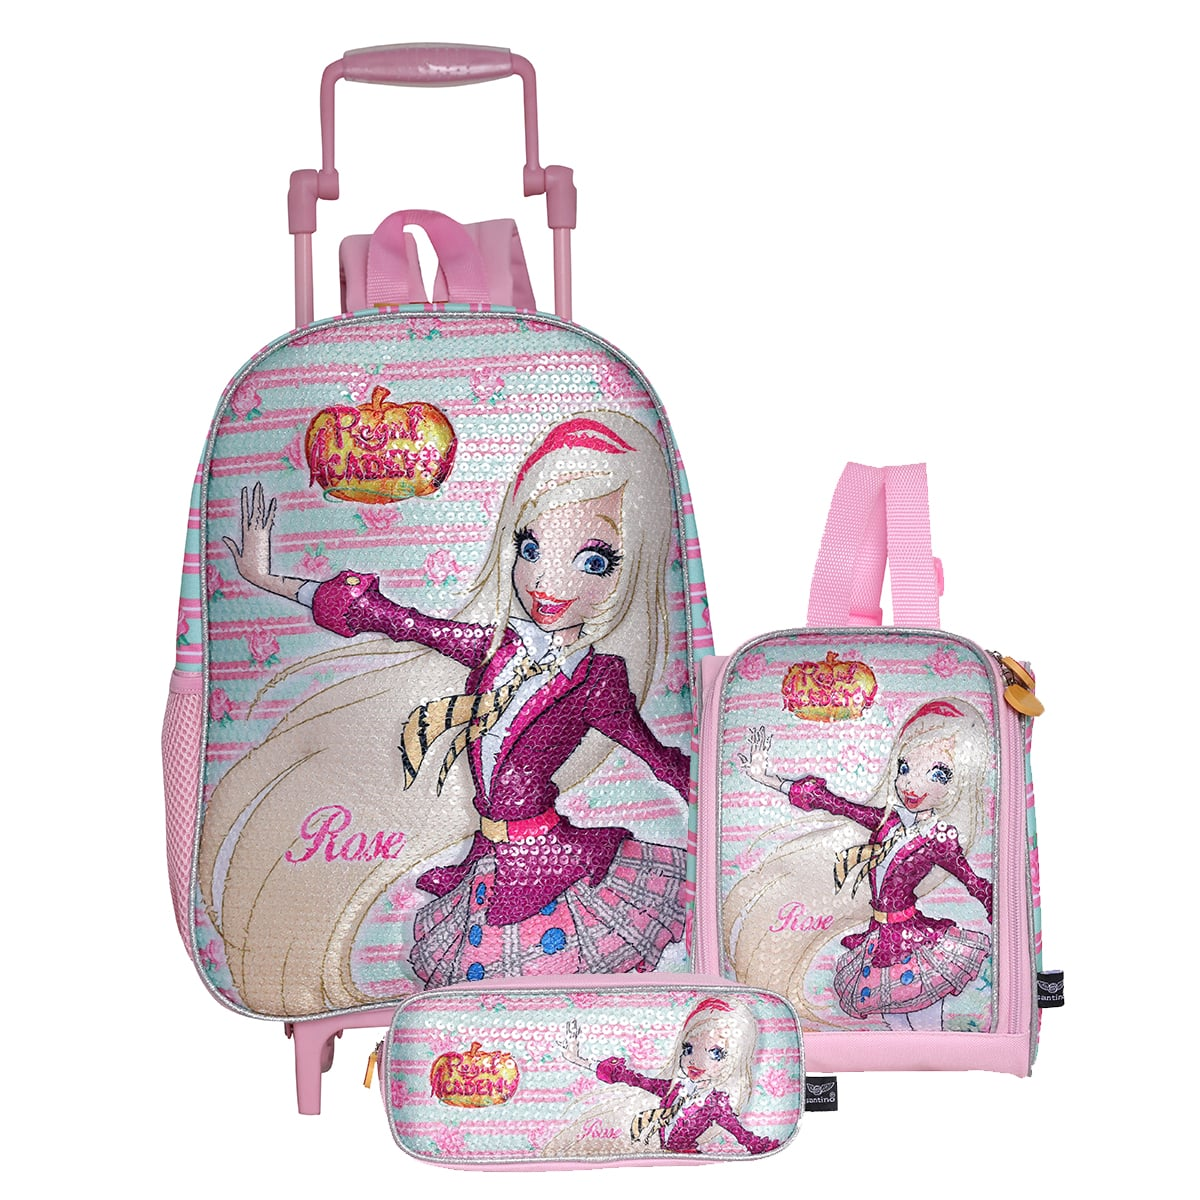 KIT MOCHILA PINK POL REGAL ACAD - RAK2U47